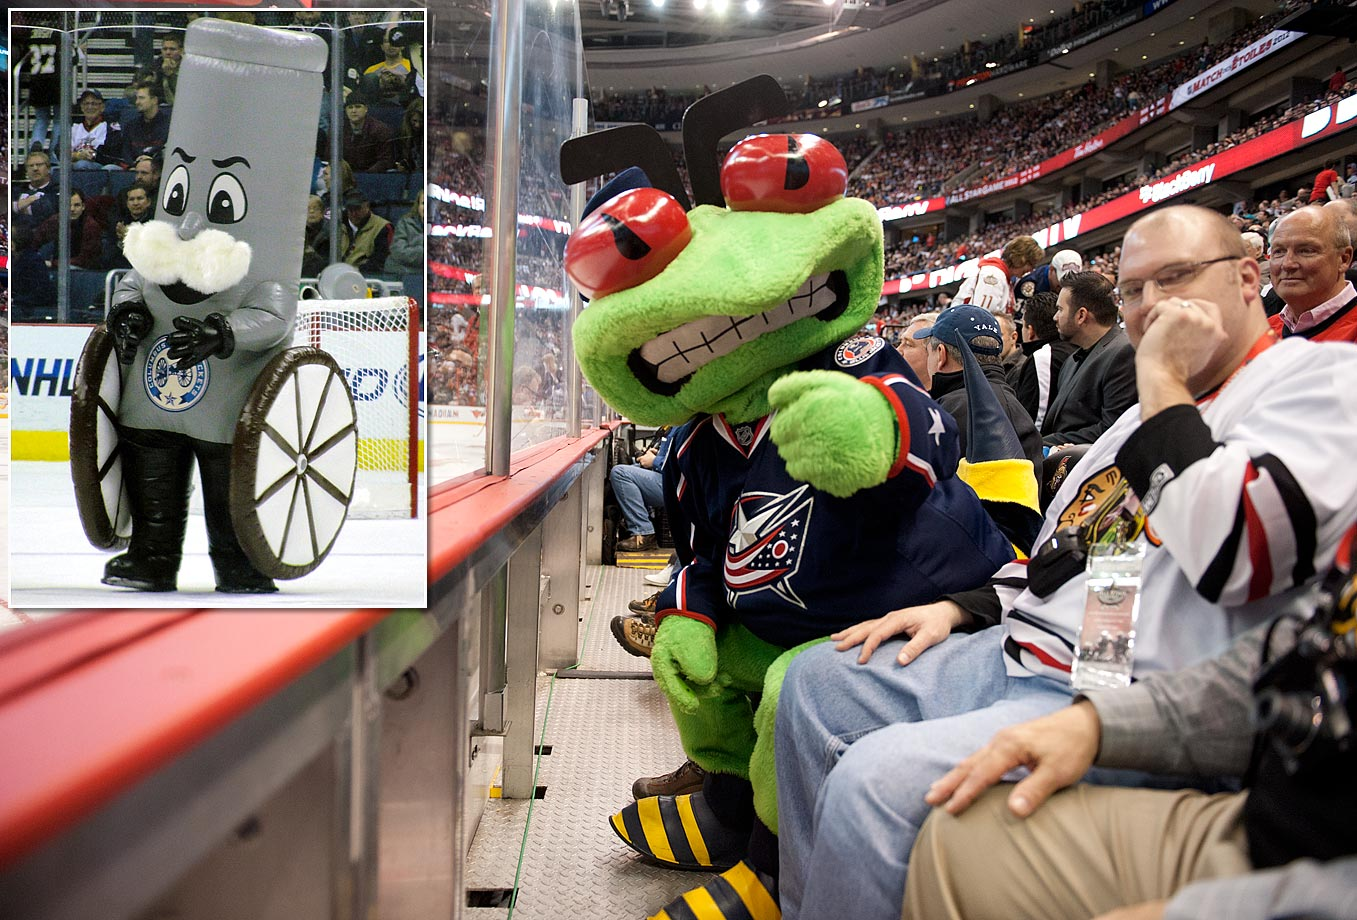 The Blue Jackets' Civil War connection is not always immediately recognized, so it was fitting that Boomer the Cannon (inset) was often mistaken for a bong, mustachioed male genitalia, or a sausage between two pizza wheels after his introduction in 2010. His plug was quickly pulled, leaving the team with its original mascot, Stinger, who seems to be a play on a yellow jacket except that he's green.